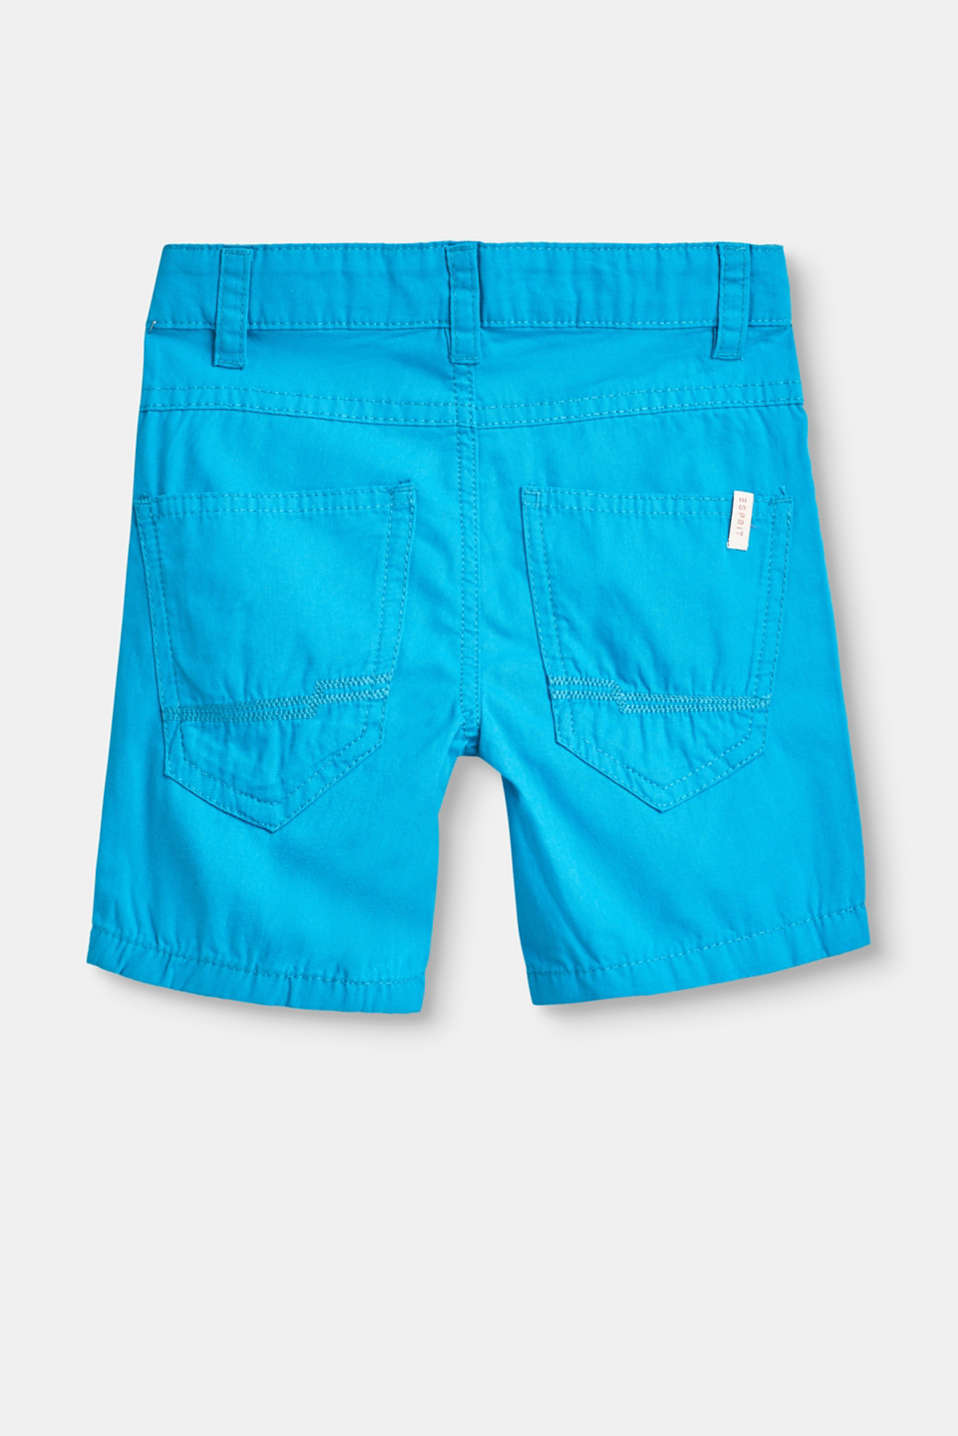 Cotton shorts with an adjustable waistband